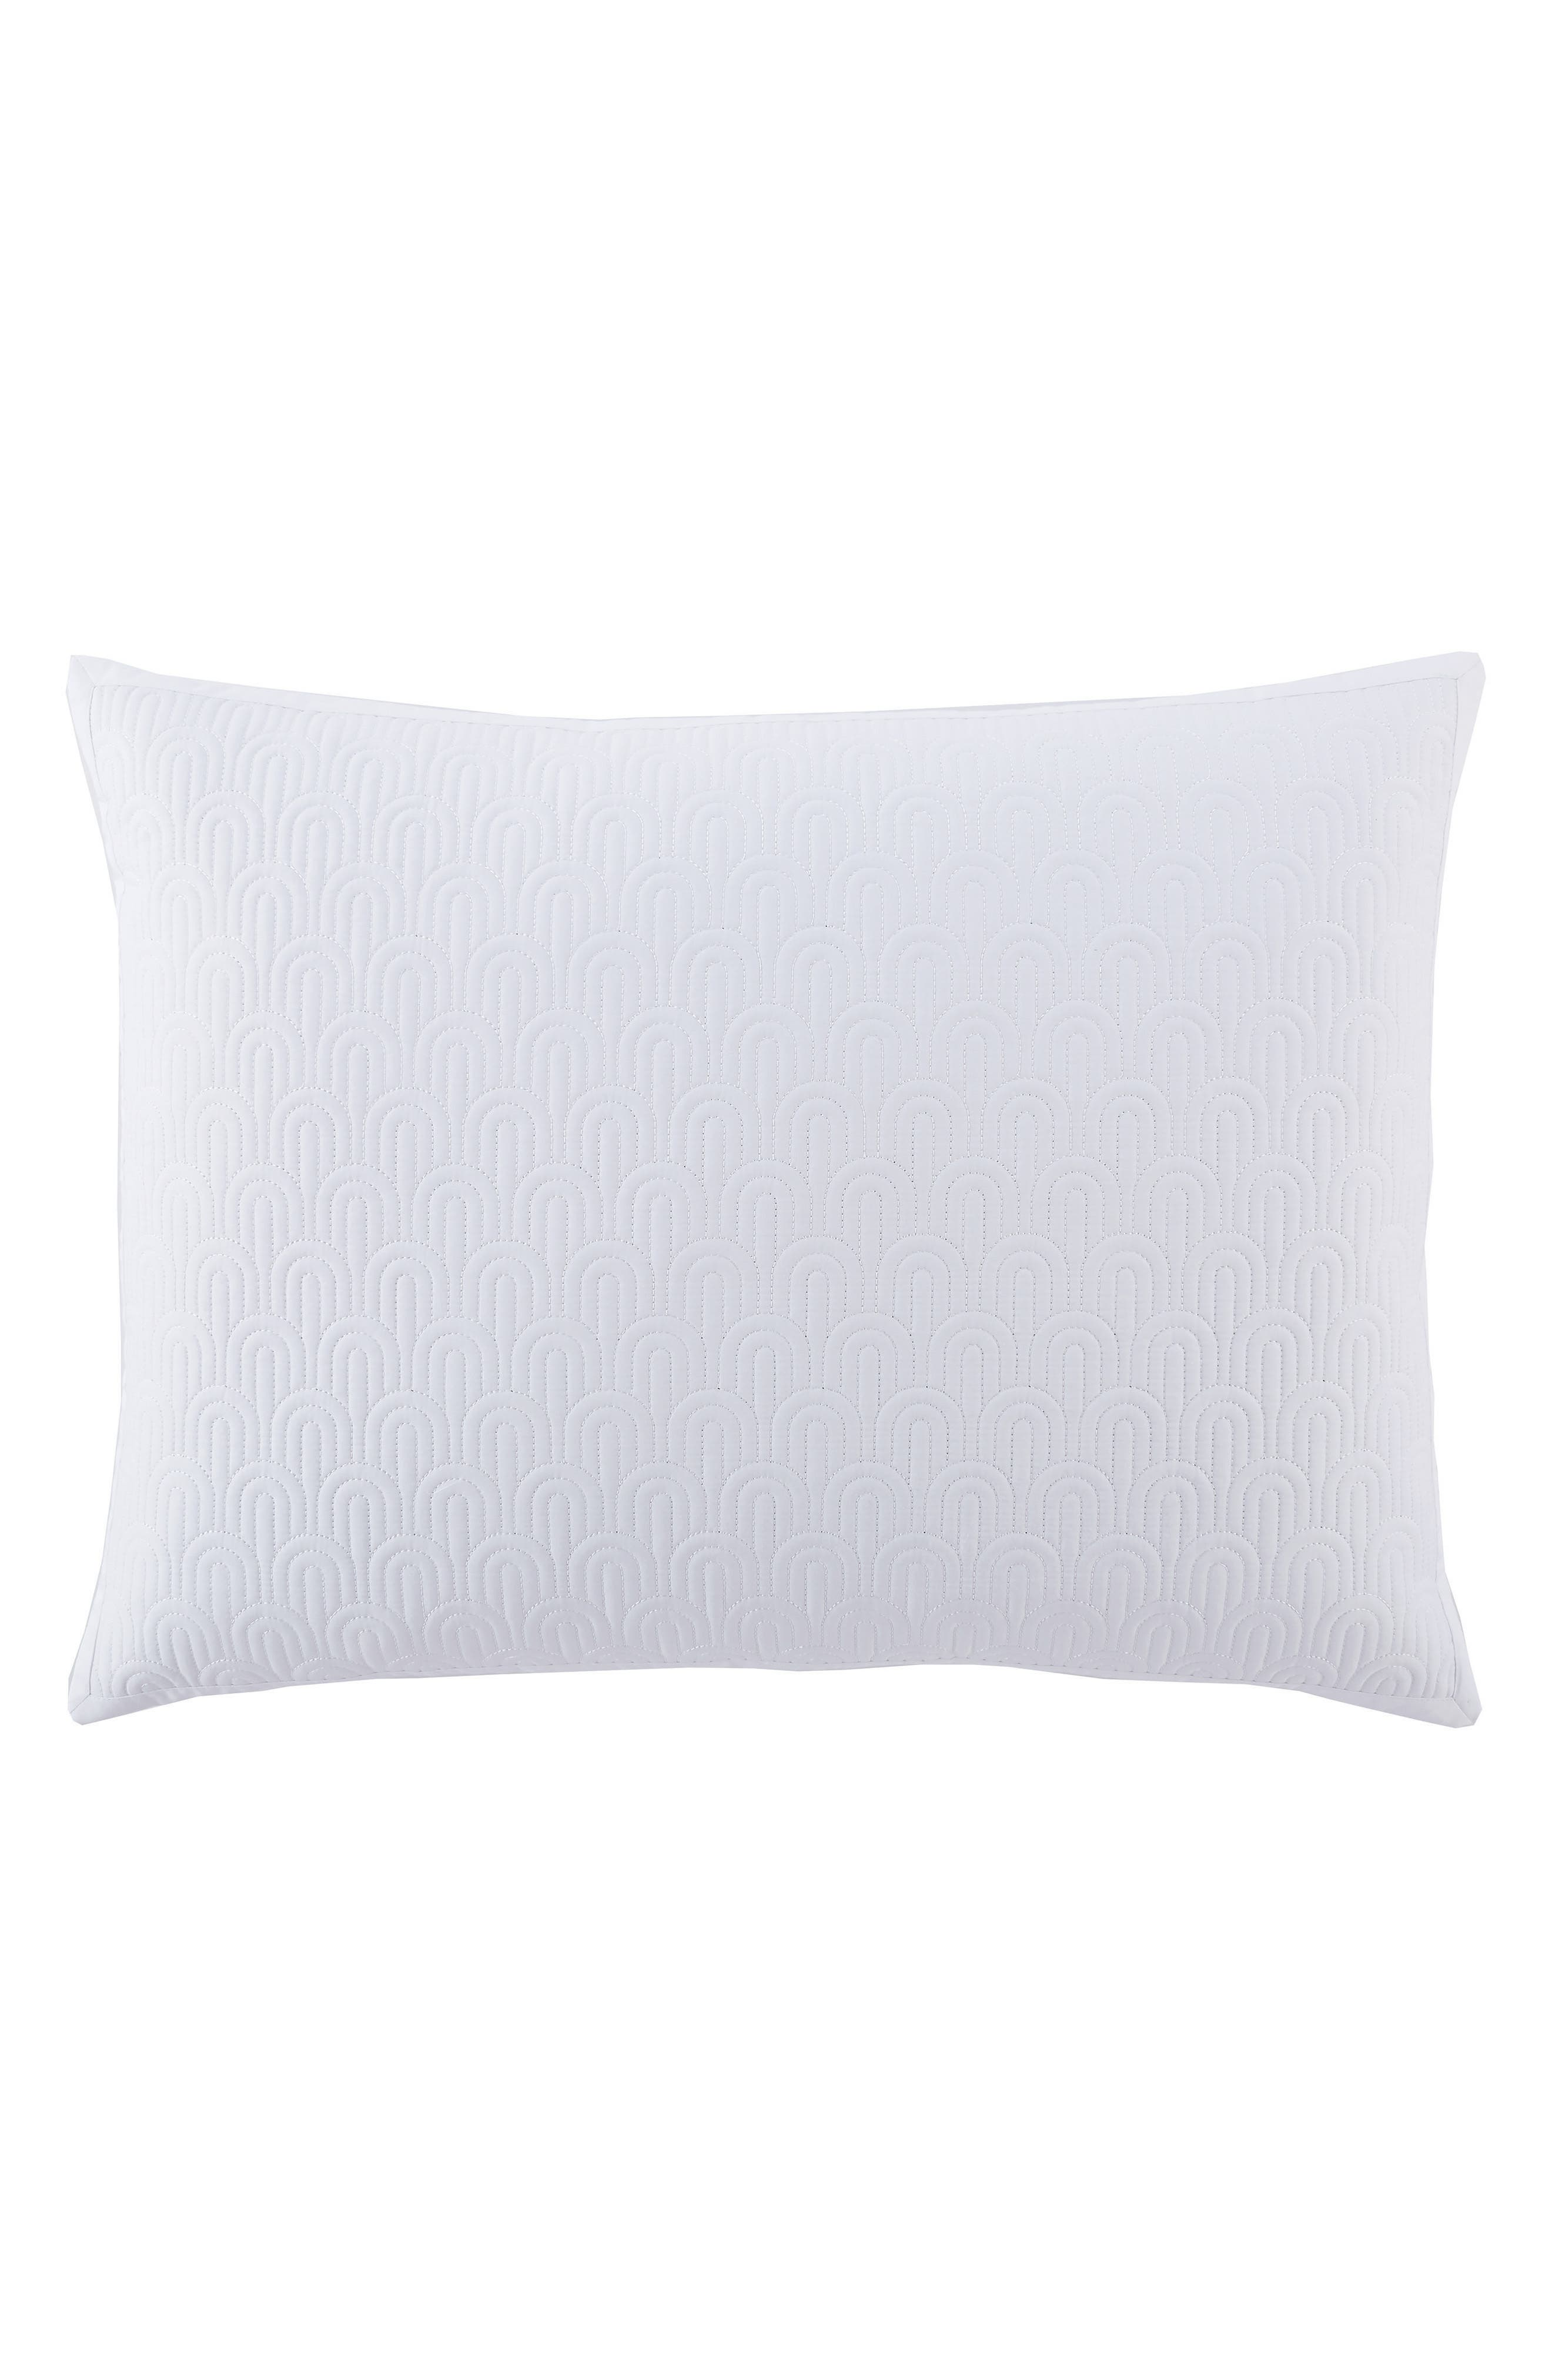 TED BAKER LONDON Quilted Sham, Main, color, WHITE